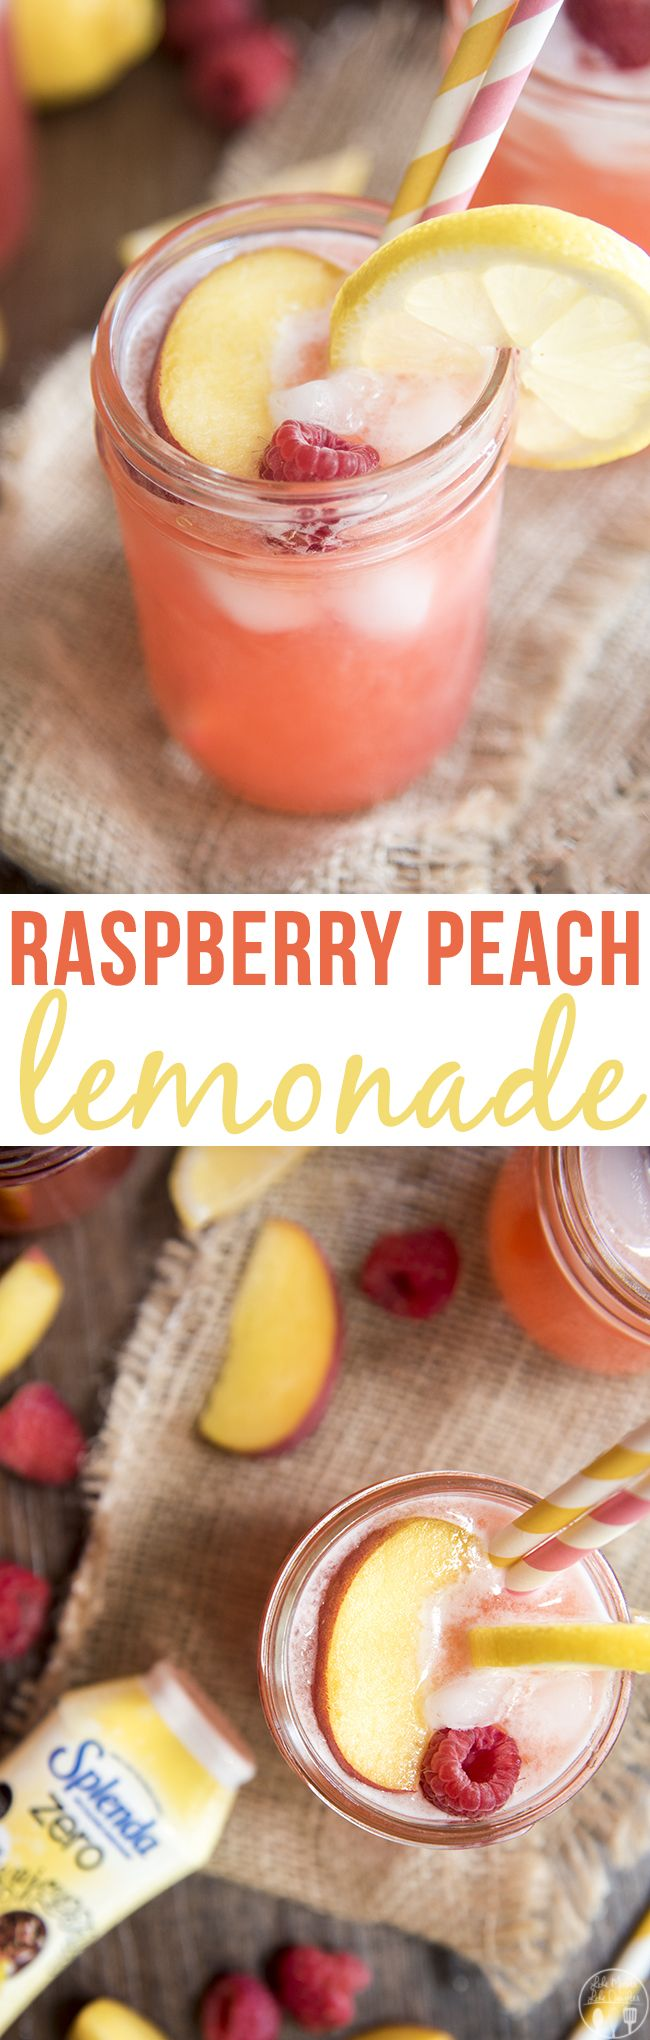 Raspberry Peach Lemonade - This lemonade is full of fresh raspberries and peaches perfect for sipping all summer long!